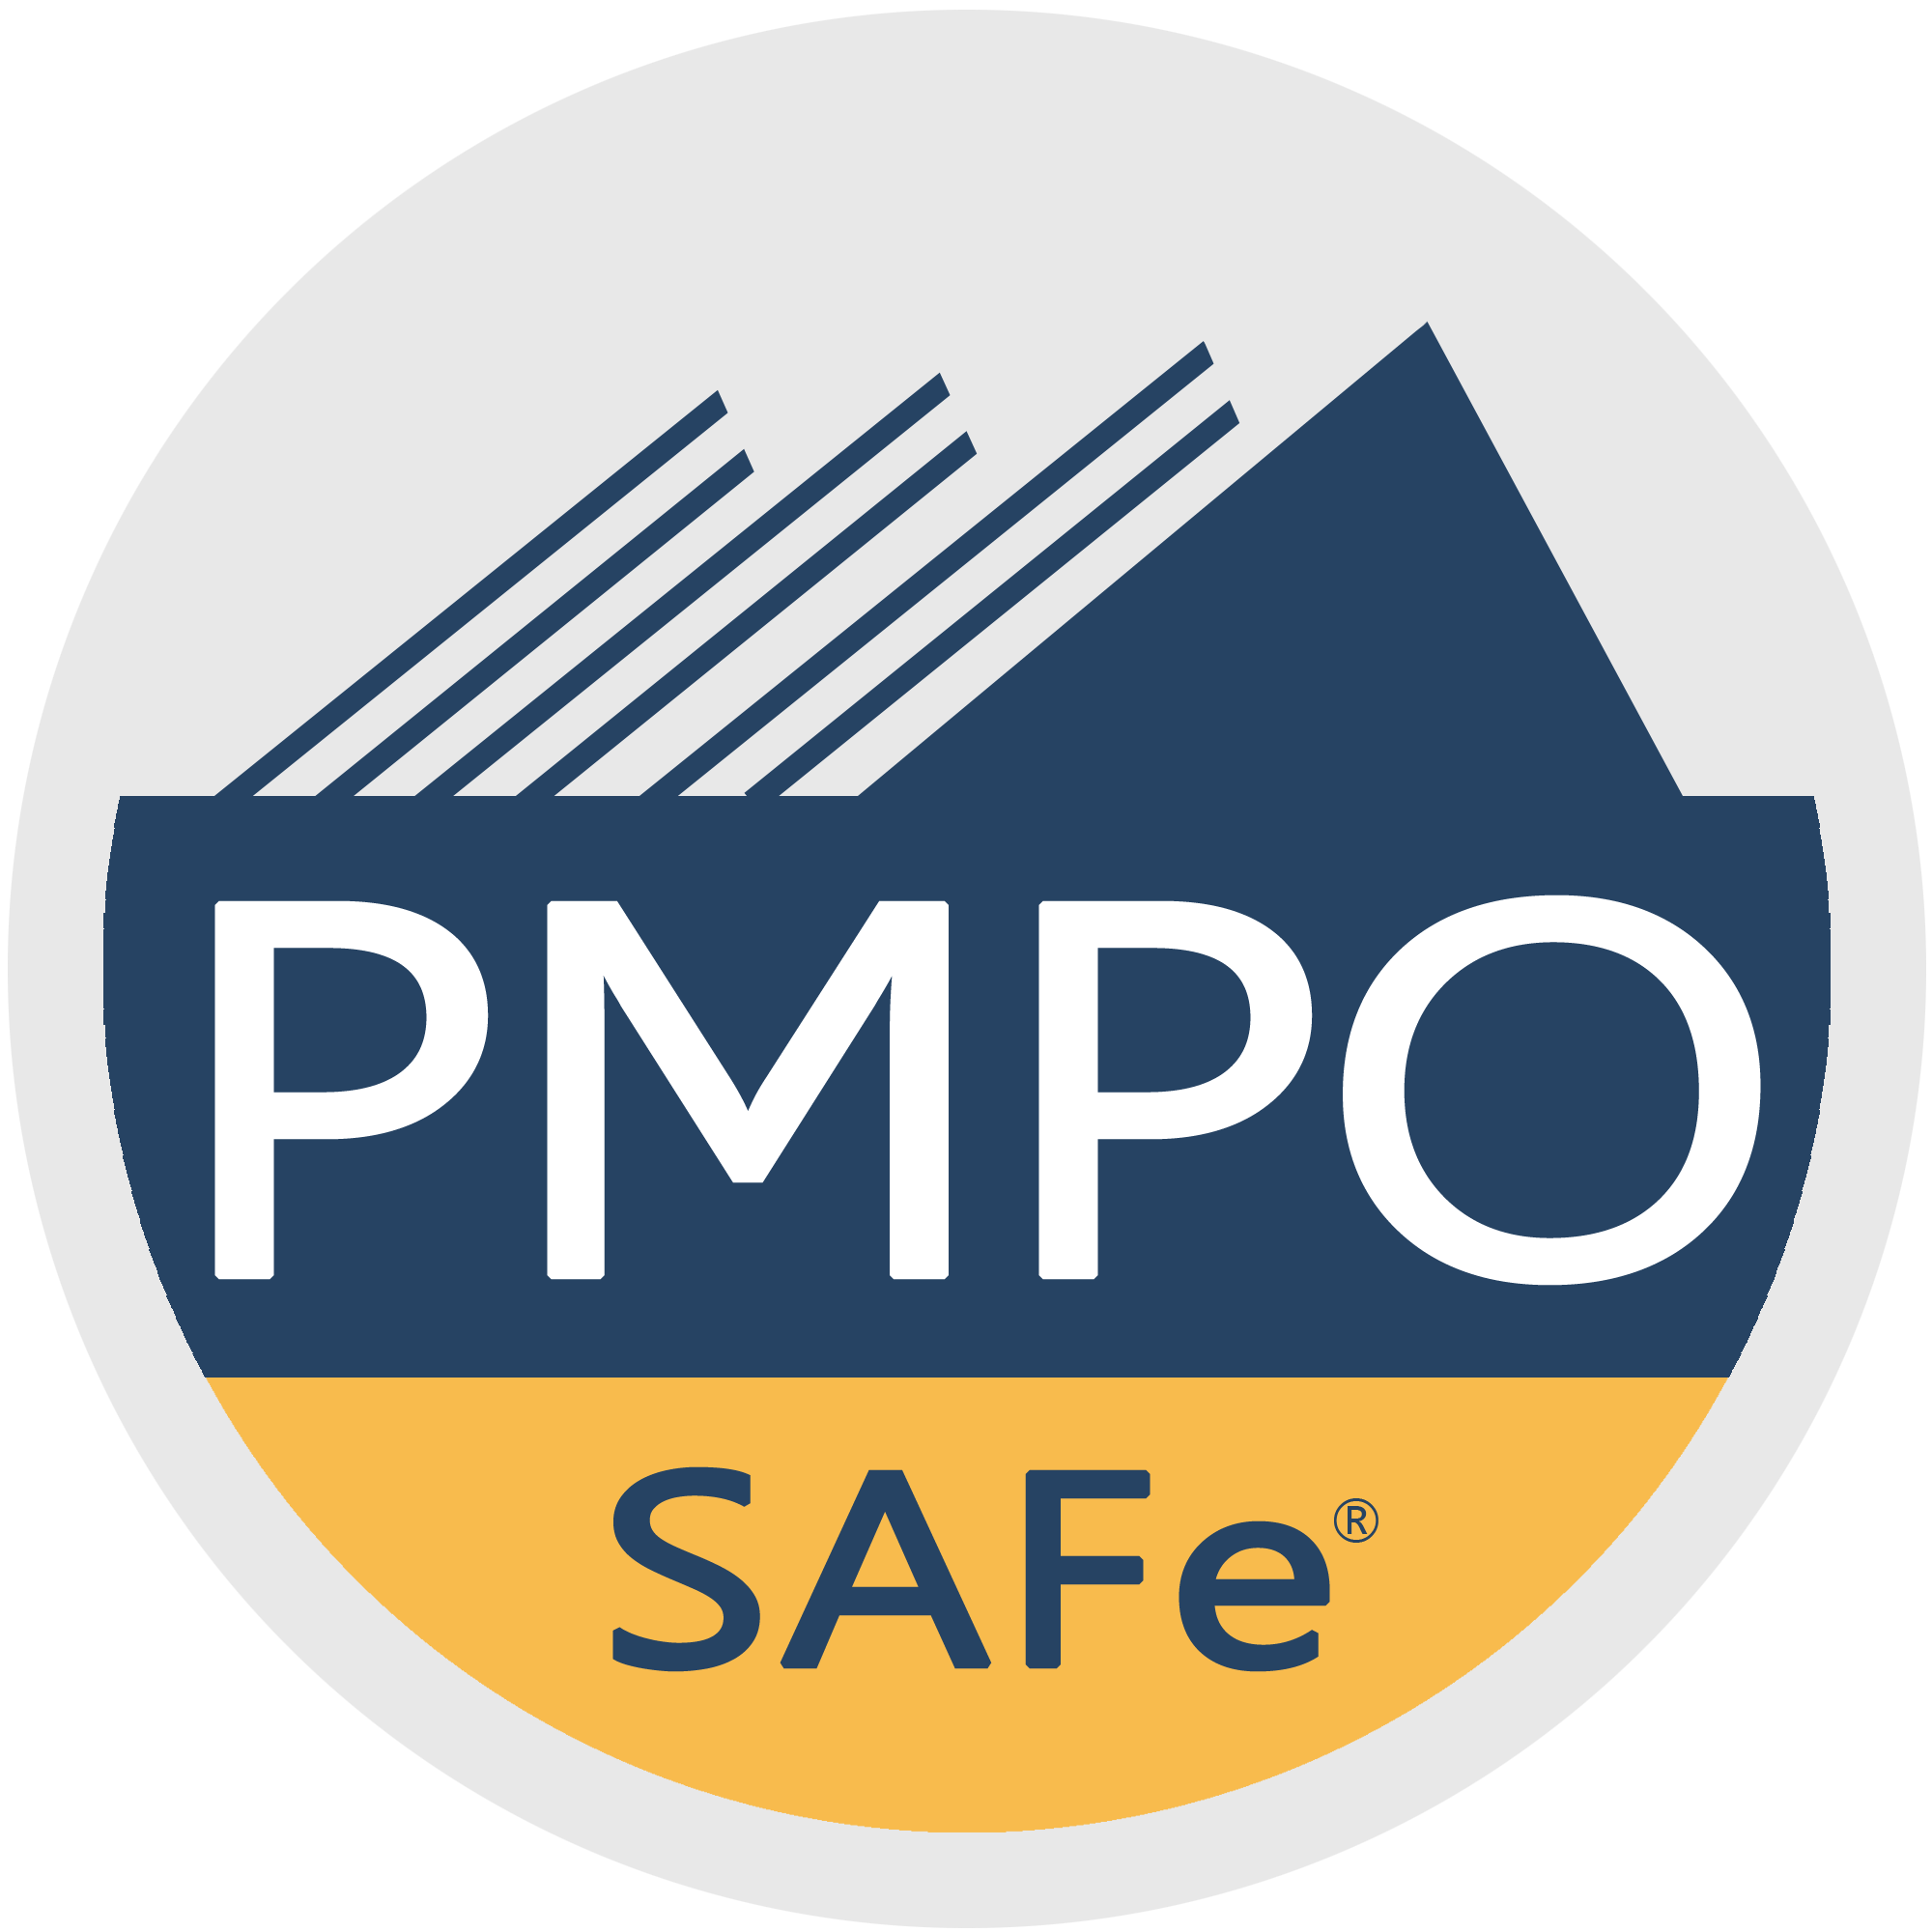 Safe 40 Product Managerproduct Owner With Pmpo Certification